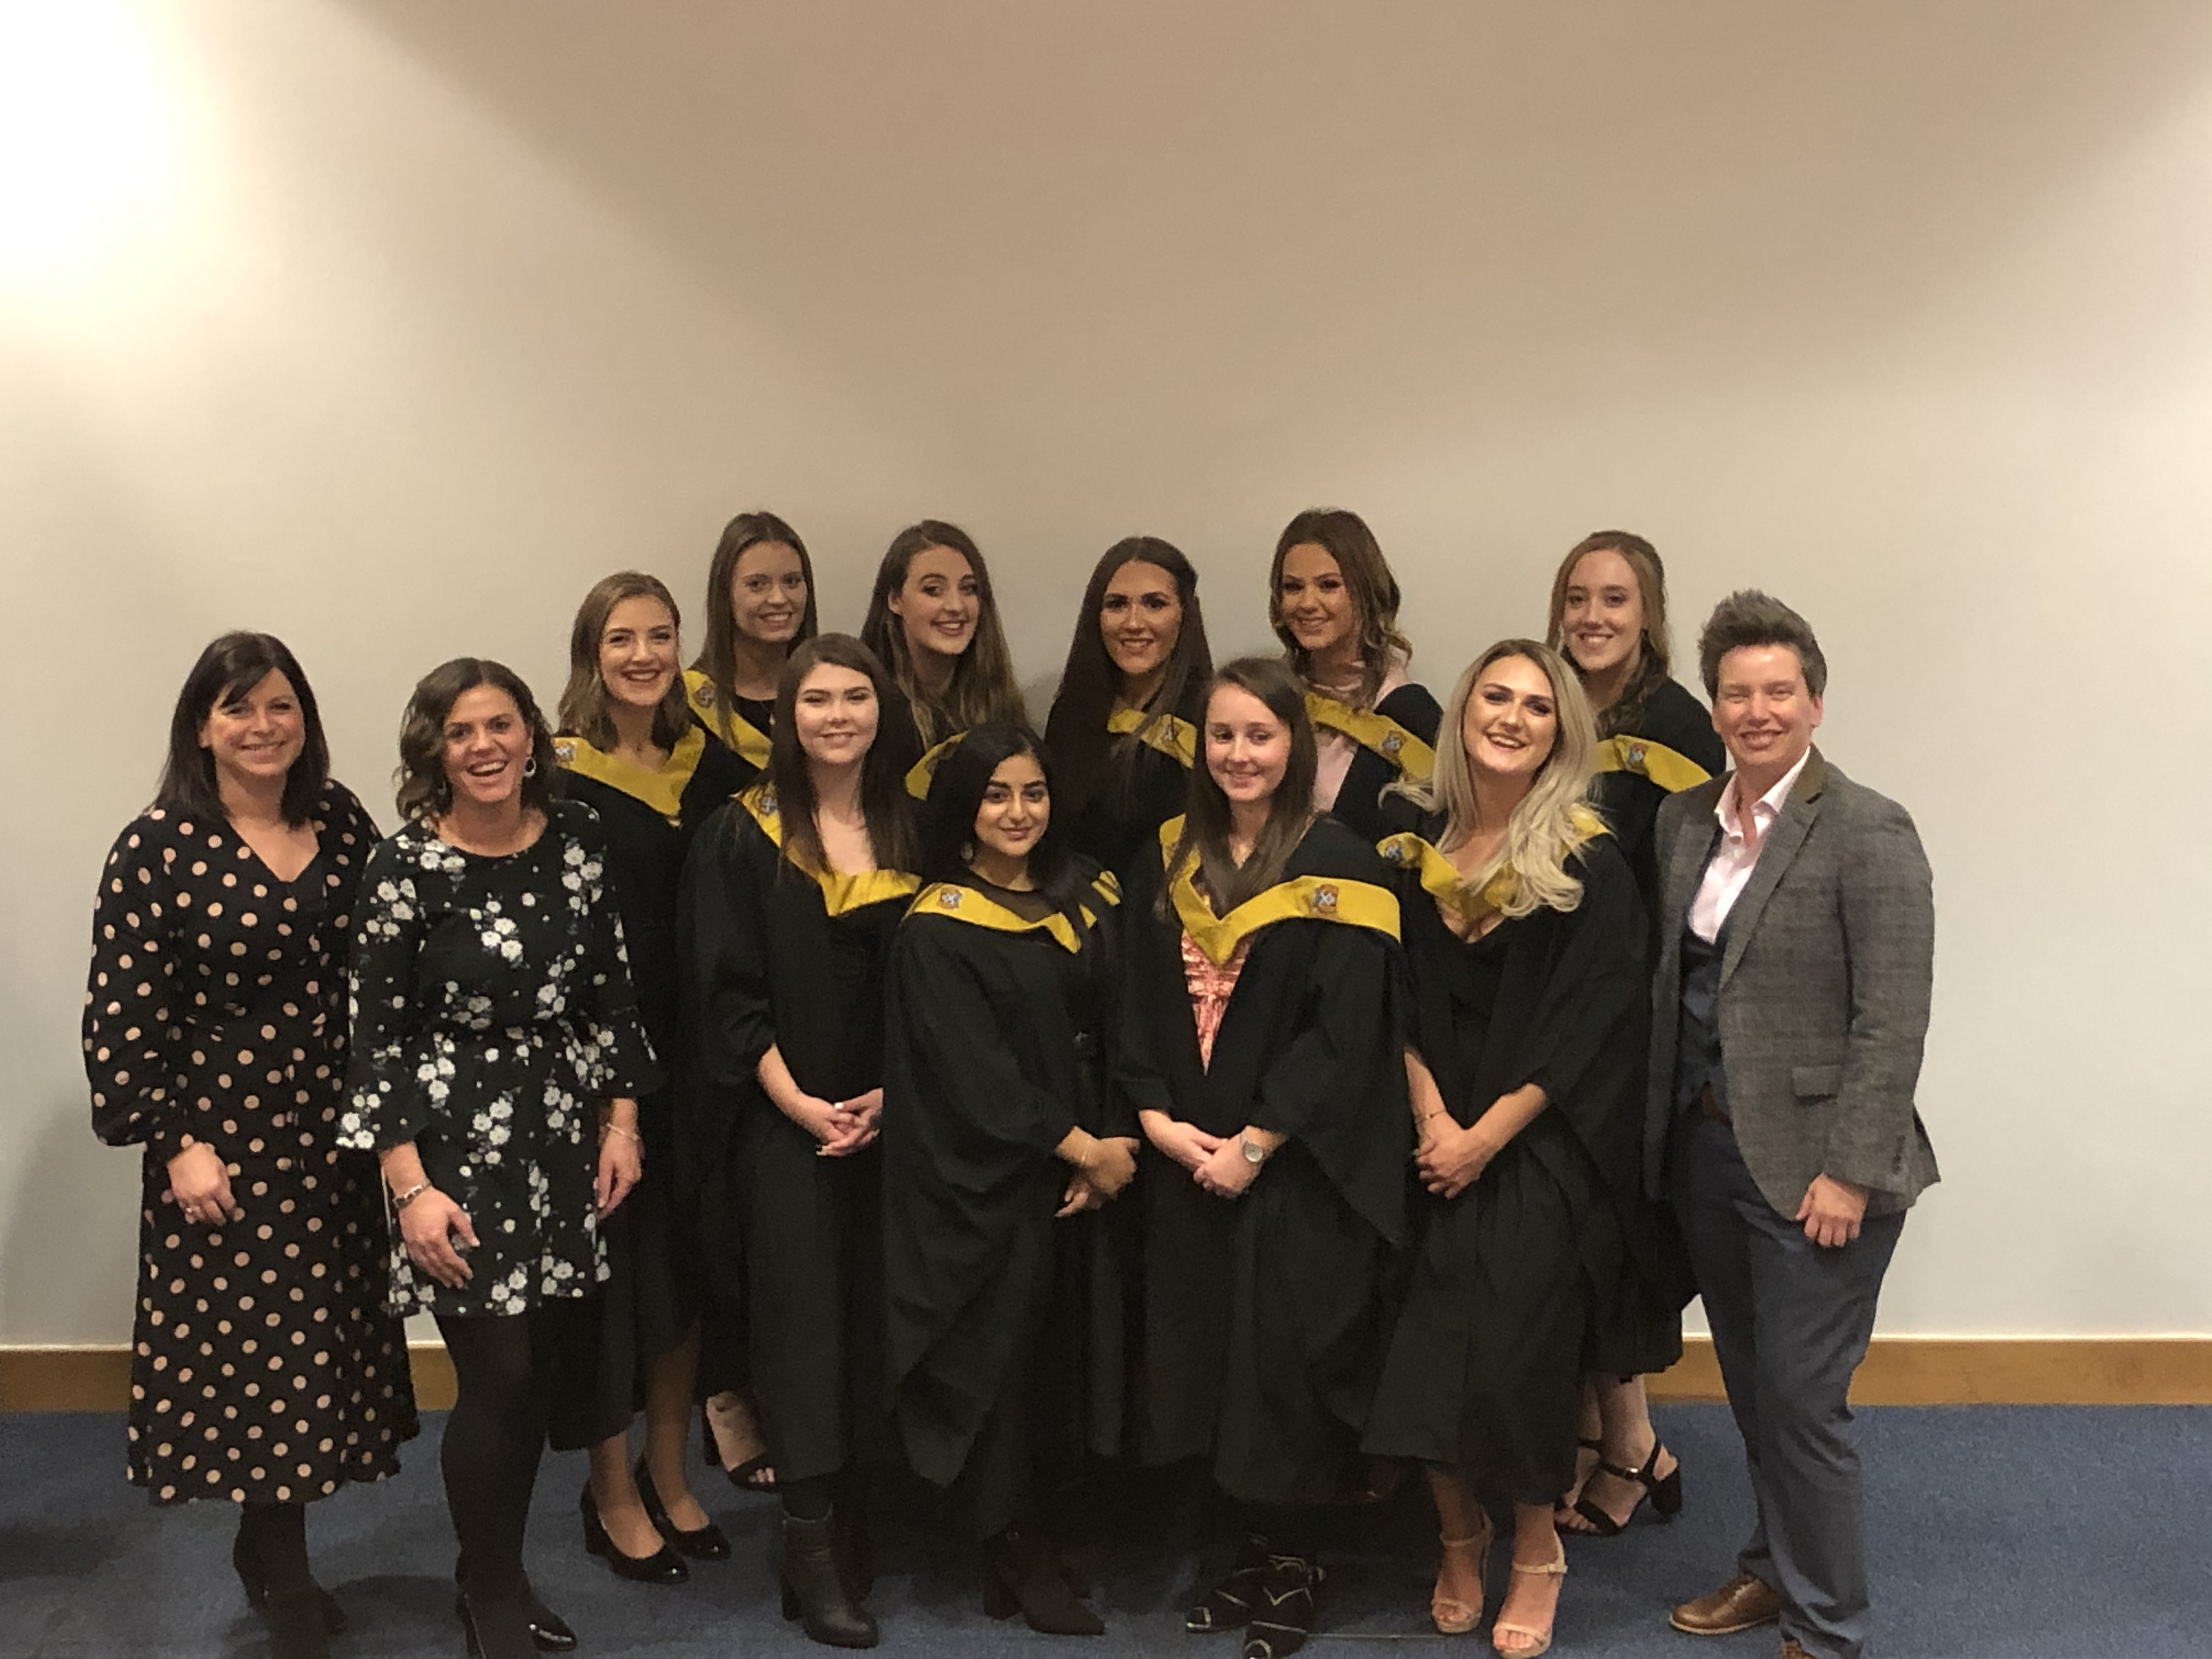 Childcare expansion recruits celebrate their graduation